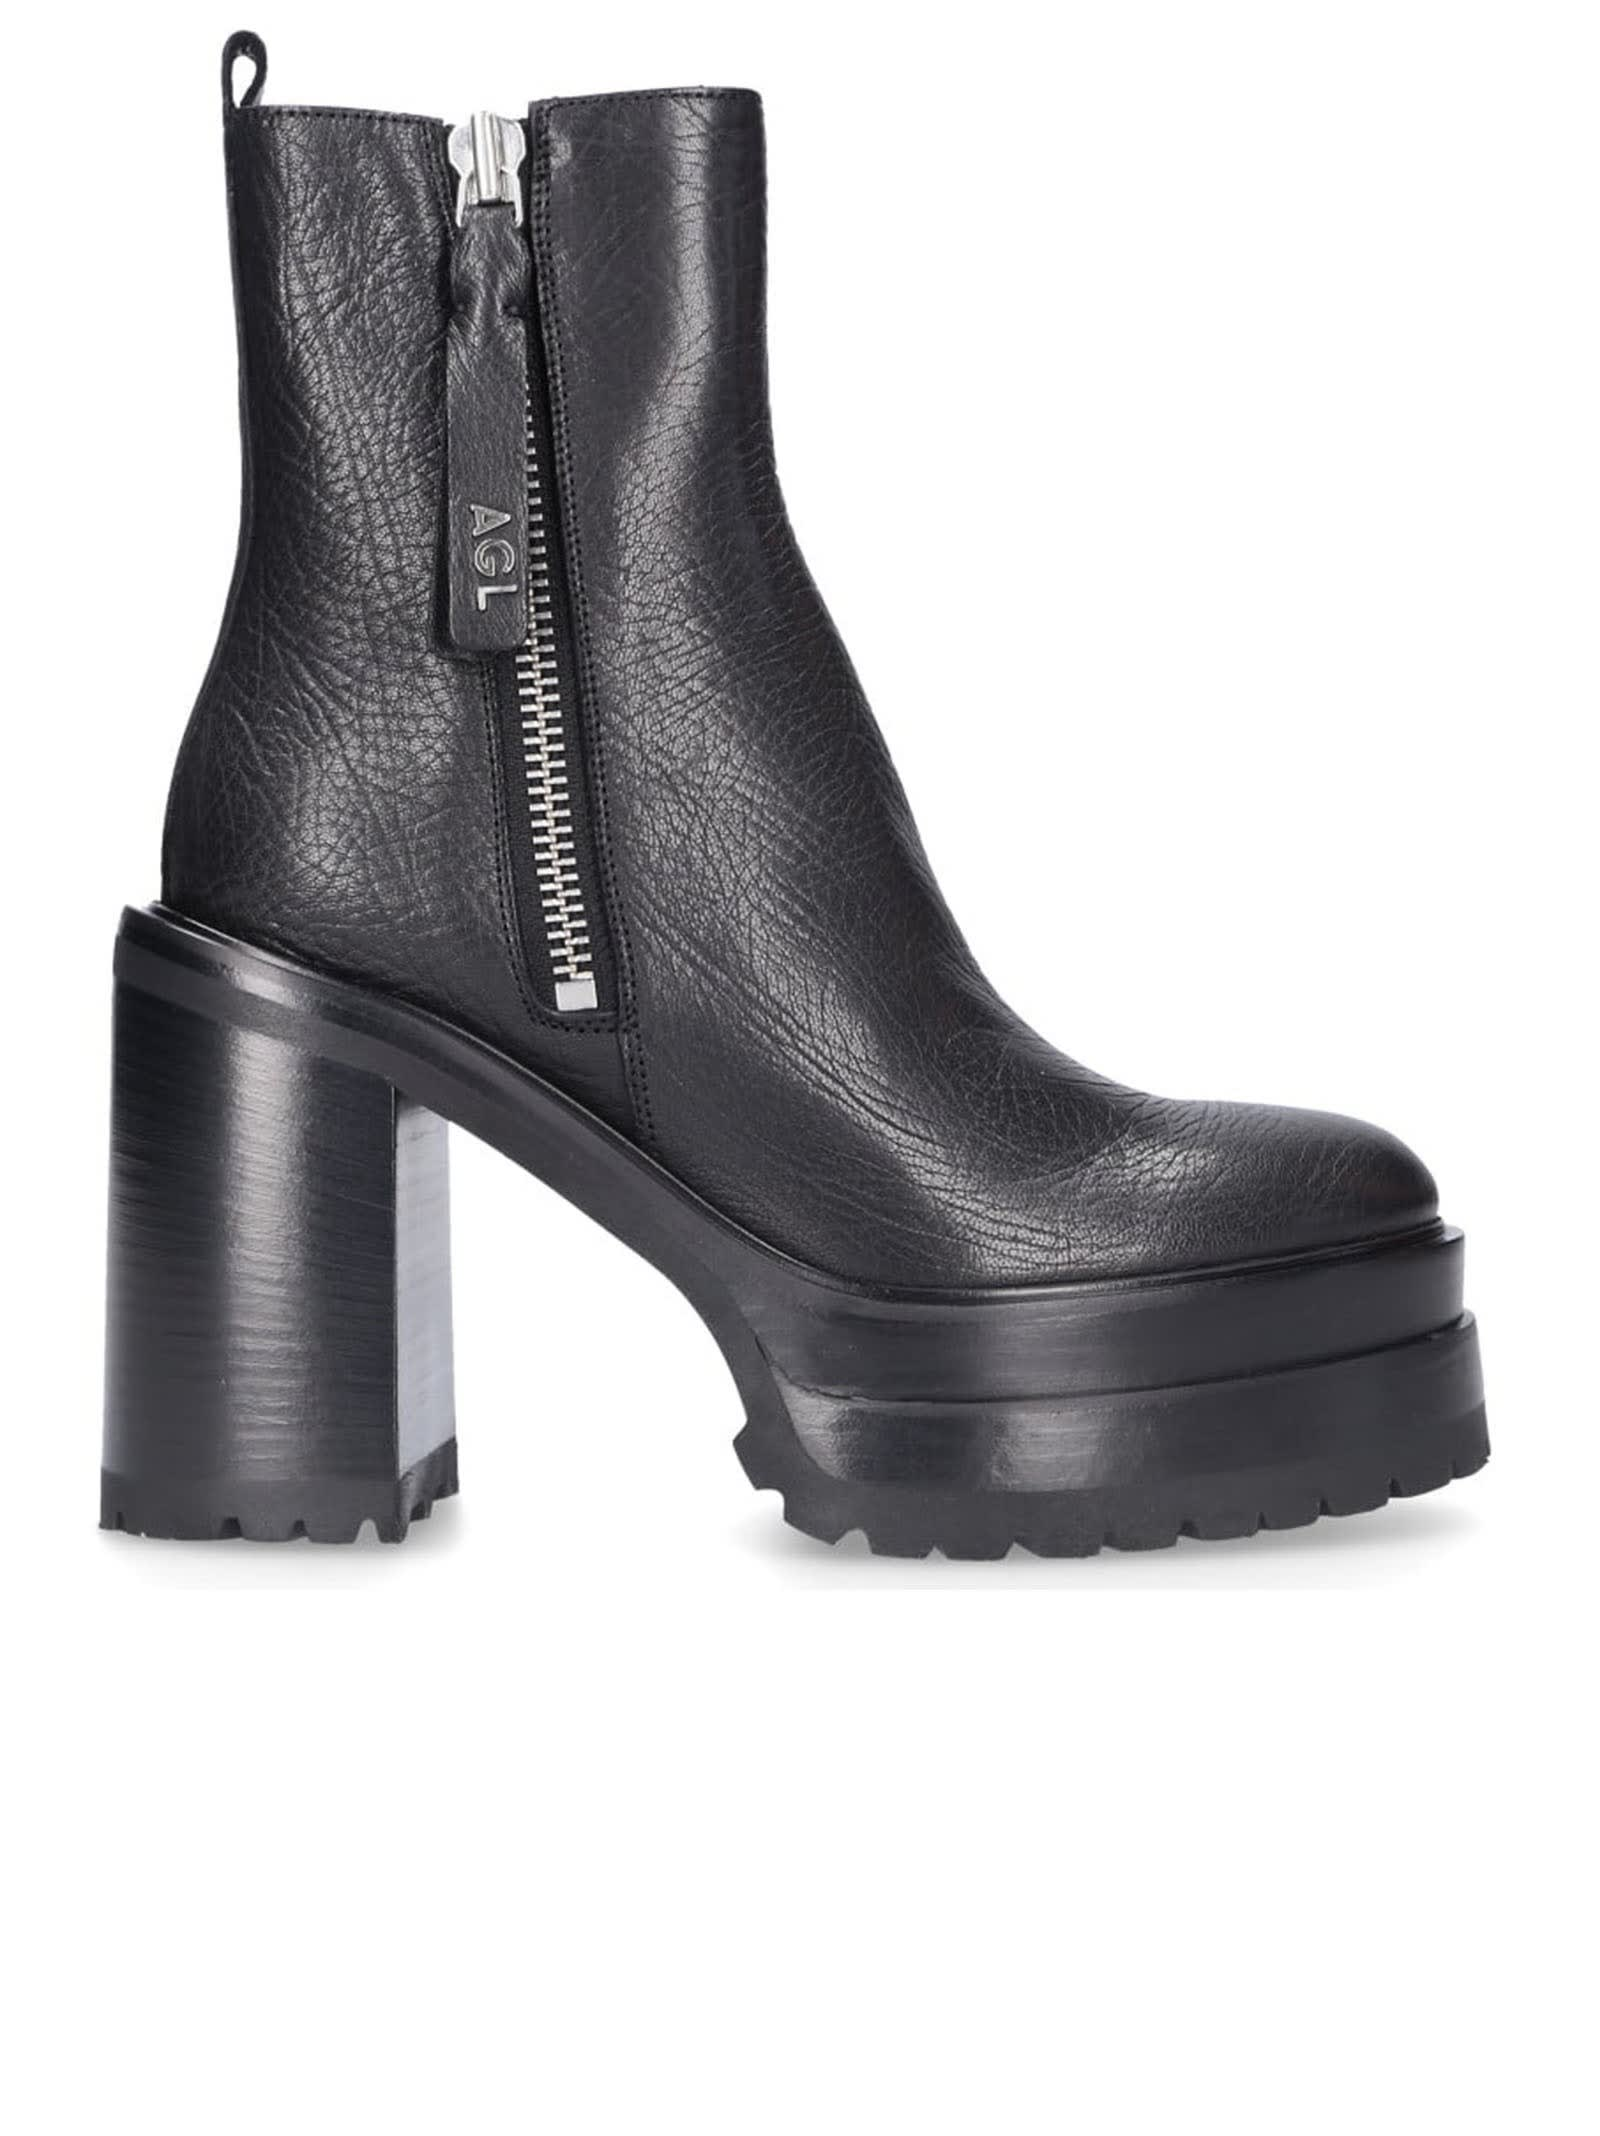 Agl Leather Tora Ankle Boots